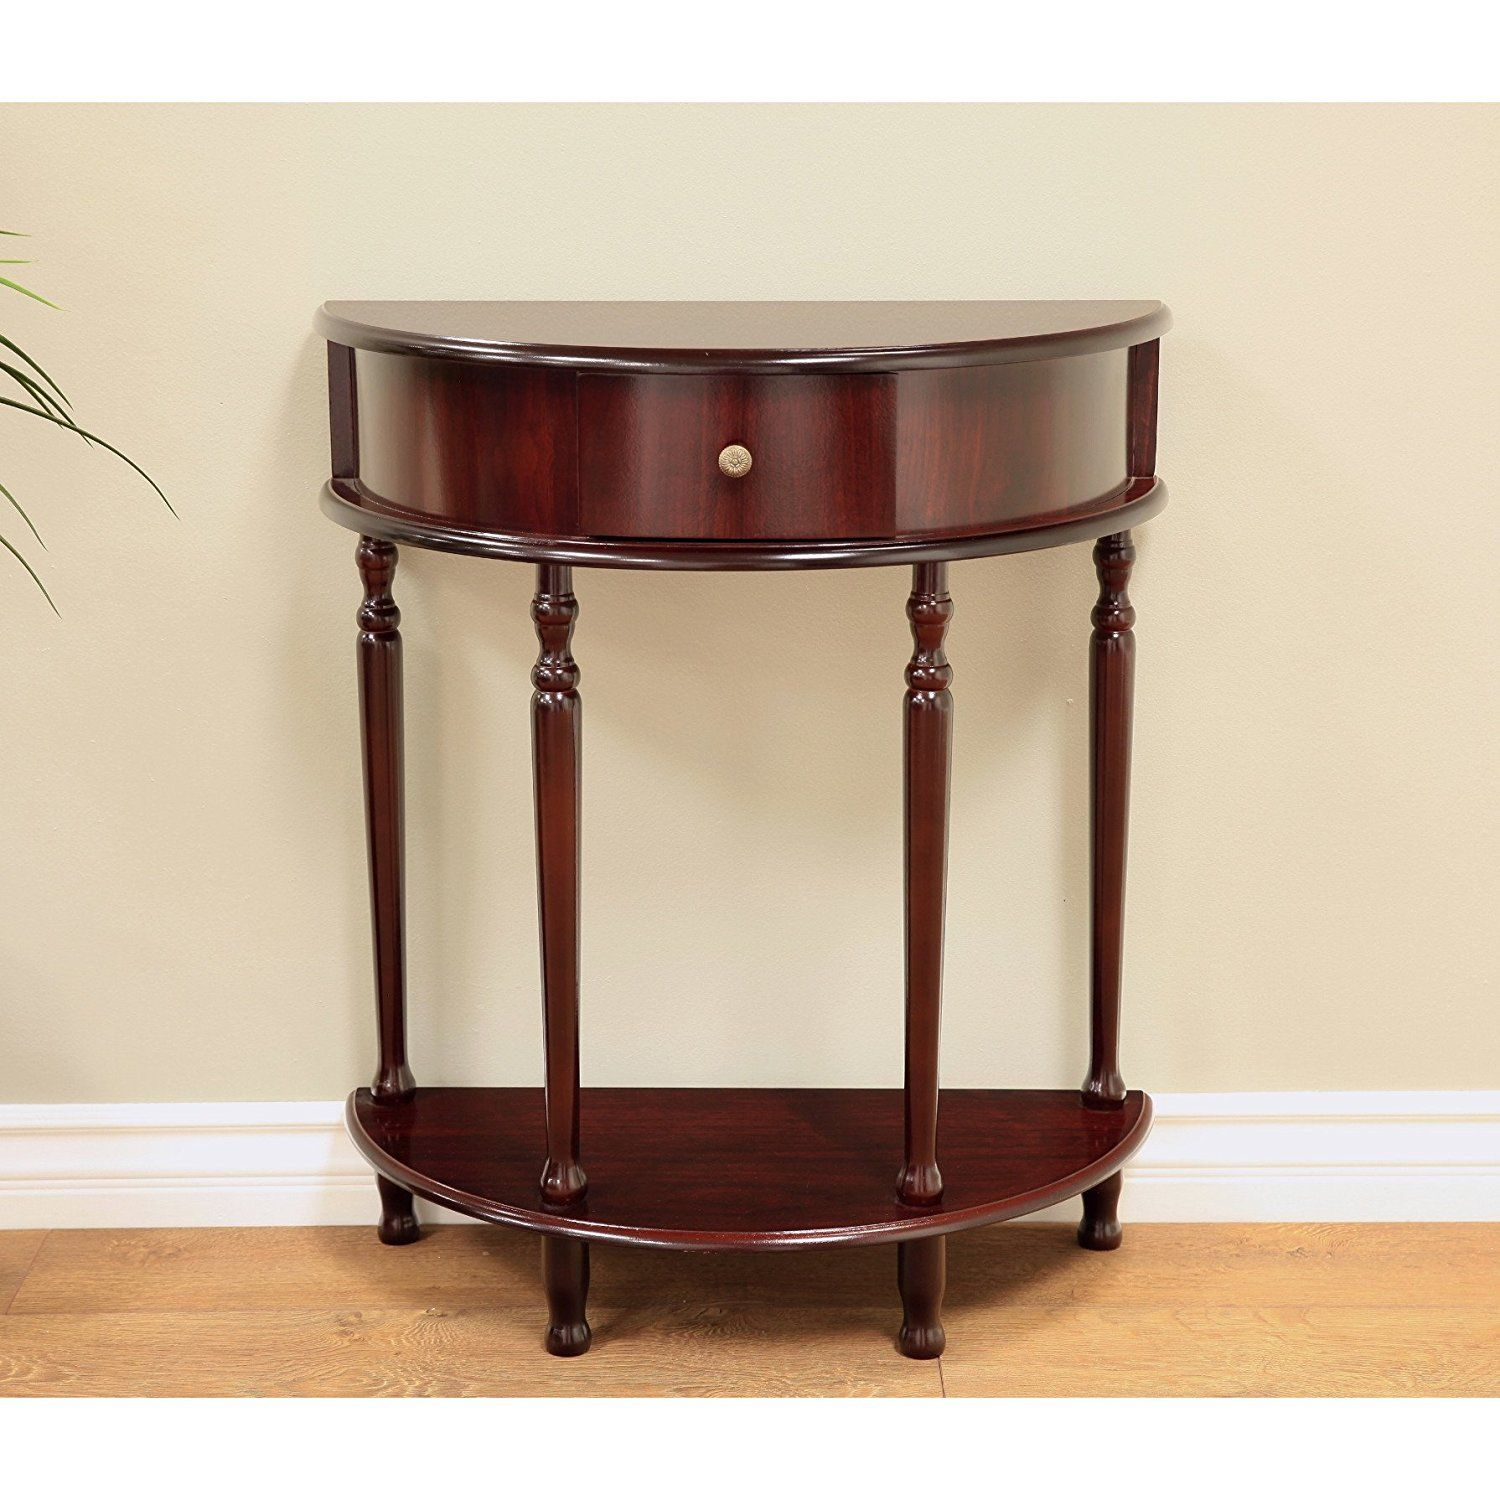 Beavin Console Table Cherry Wood Crafted Half Moon Shaped One Ious Central Drawer And Exterior Shelf Fit For Foyer Or The